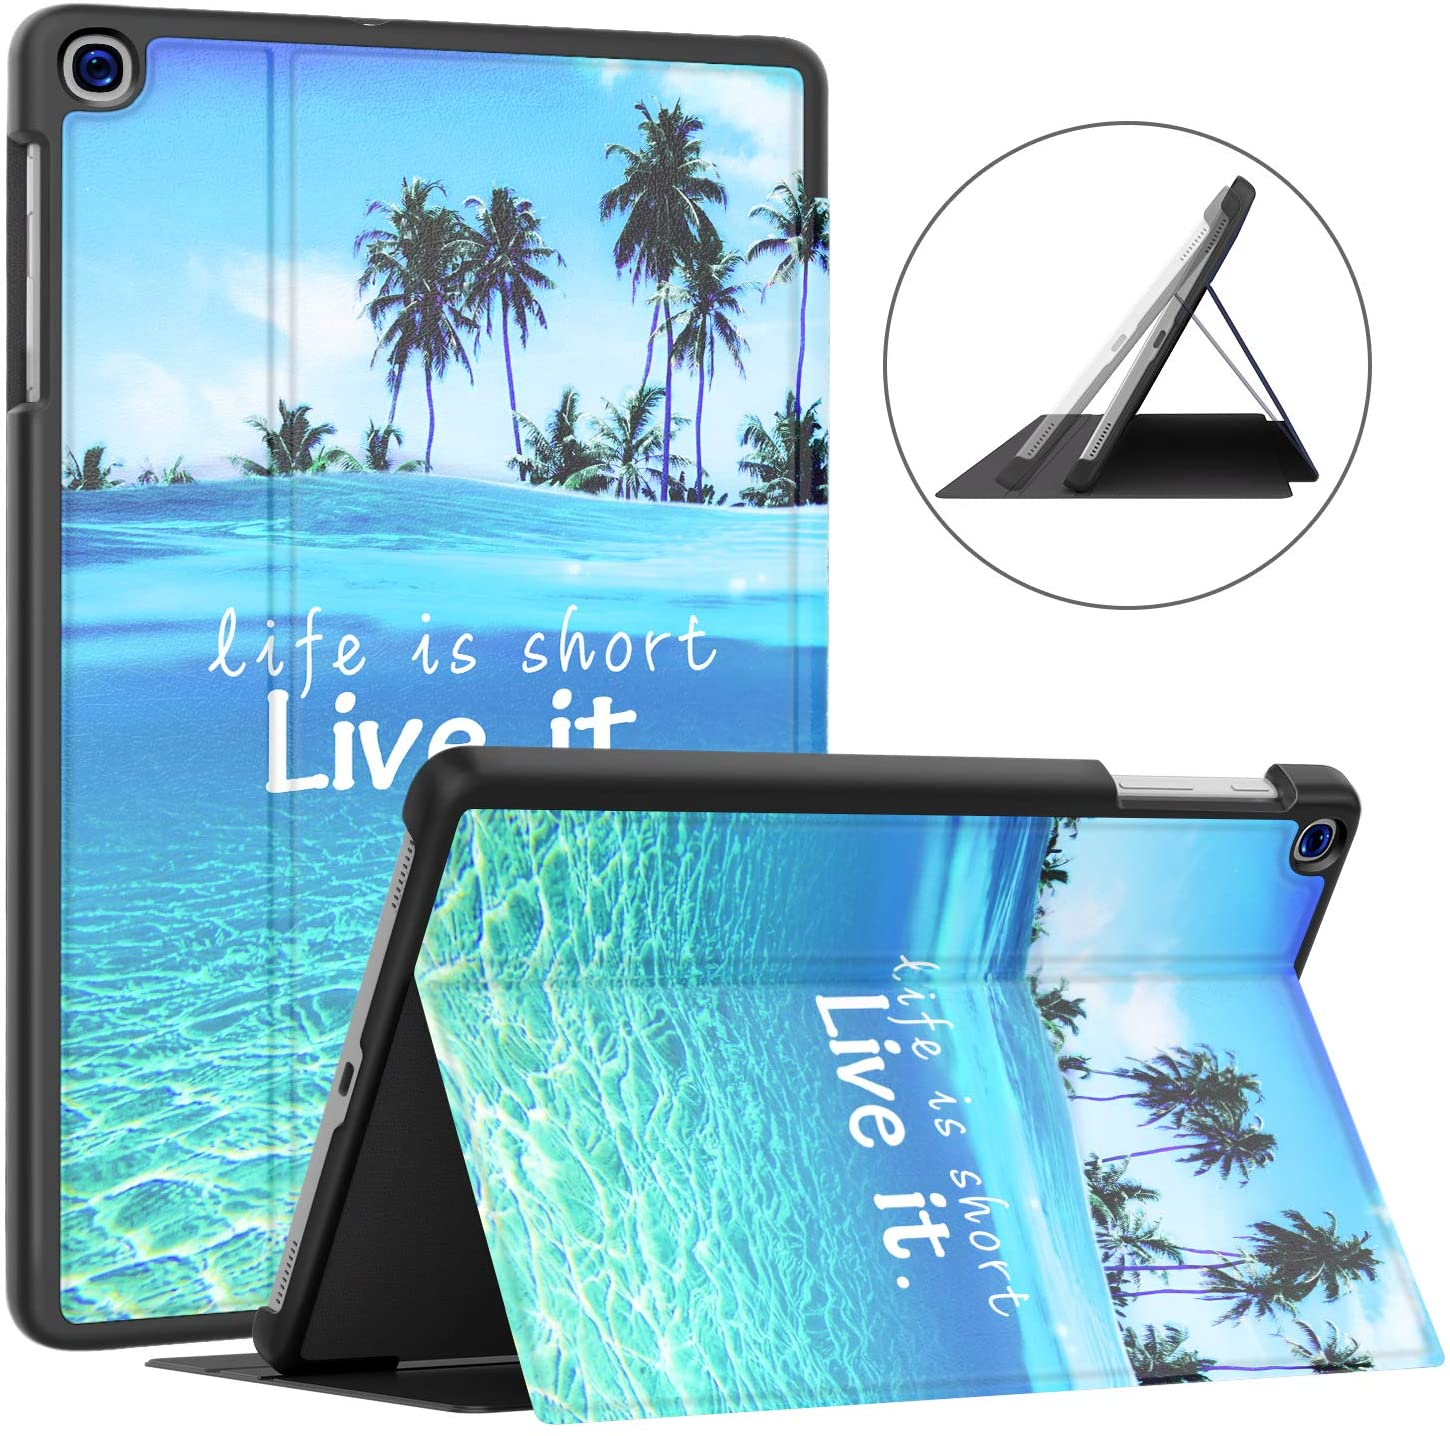 Soke Galaxy Tab A 10.1 Case 2019, Premium Shock Proof Stand Folio Case,Multi- Viewing Angles, Soft TPU Back Cover for Samsung Galaxy Tab A 10.1 inch Tablet [SM-T510/T515/T517],Summer Beach